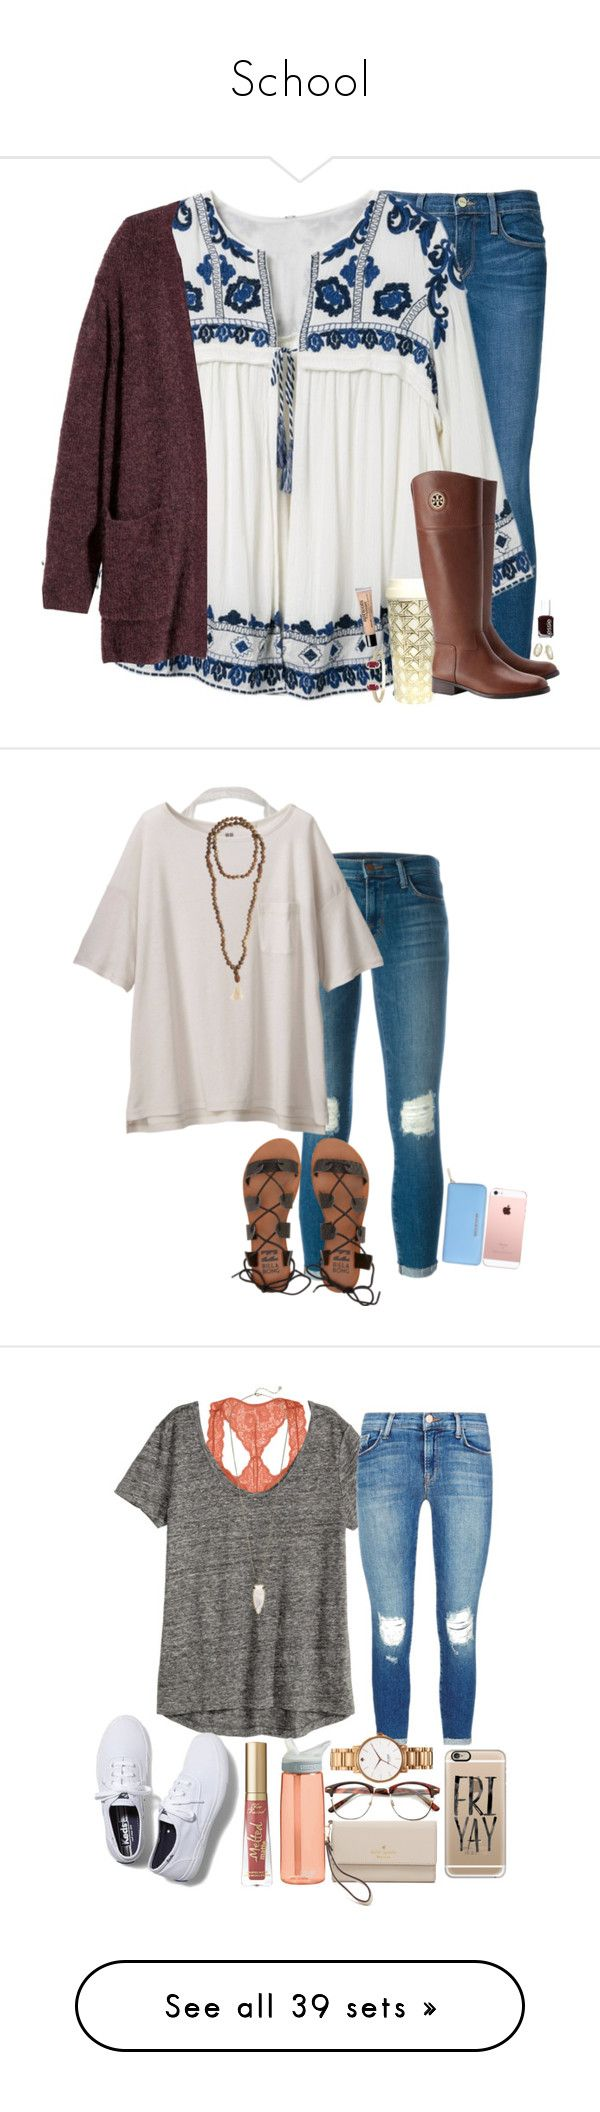 """""""School"""" by janiewooten ❤ liked on Polyvore featuring Frame, Kate Spade, Tory Burch, Kendra Scott, Essie, H&M, philosophy, J Brand, Uniqlo and Billabong"""